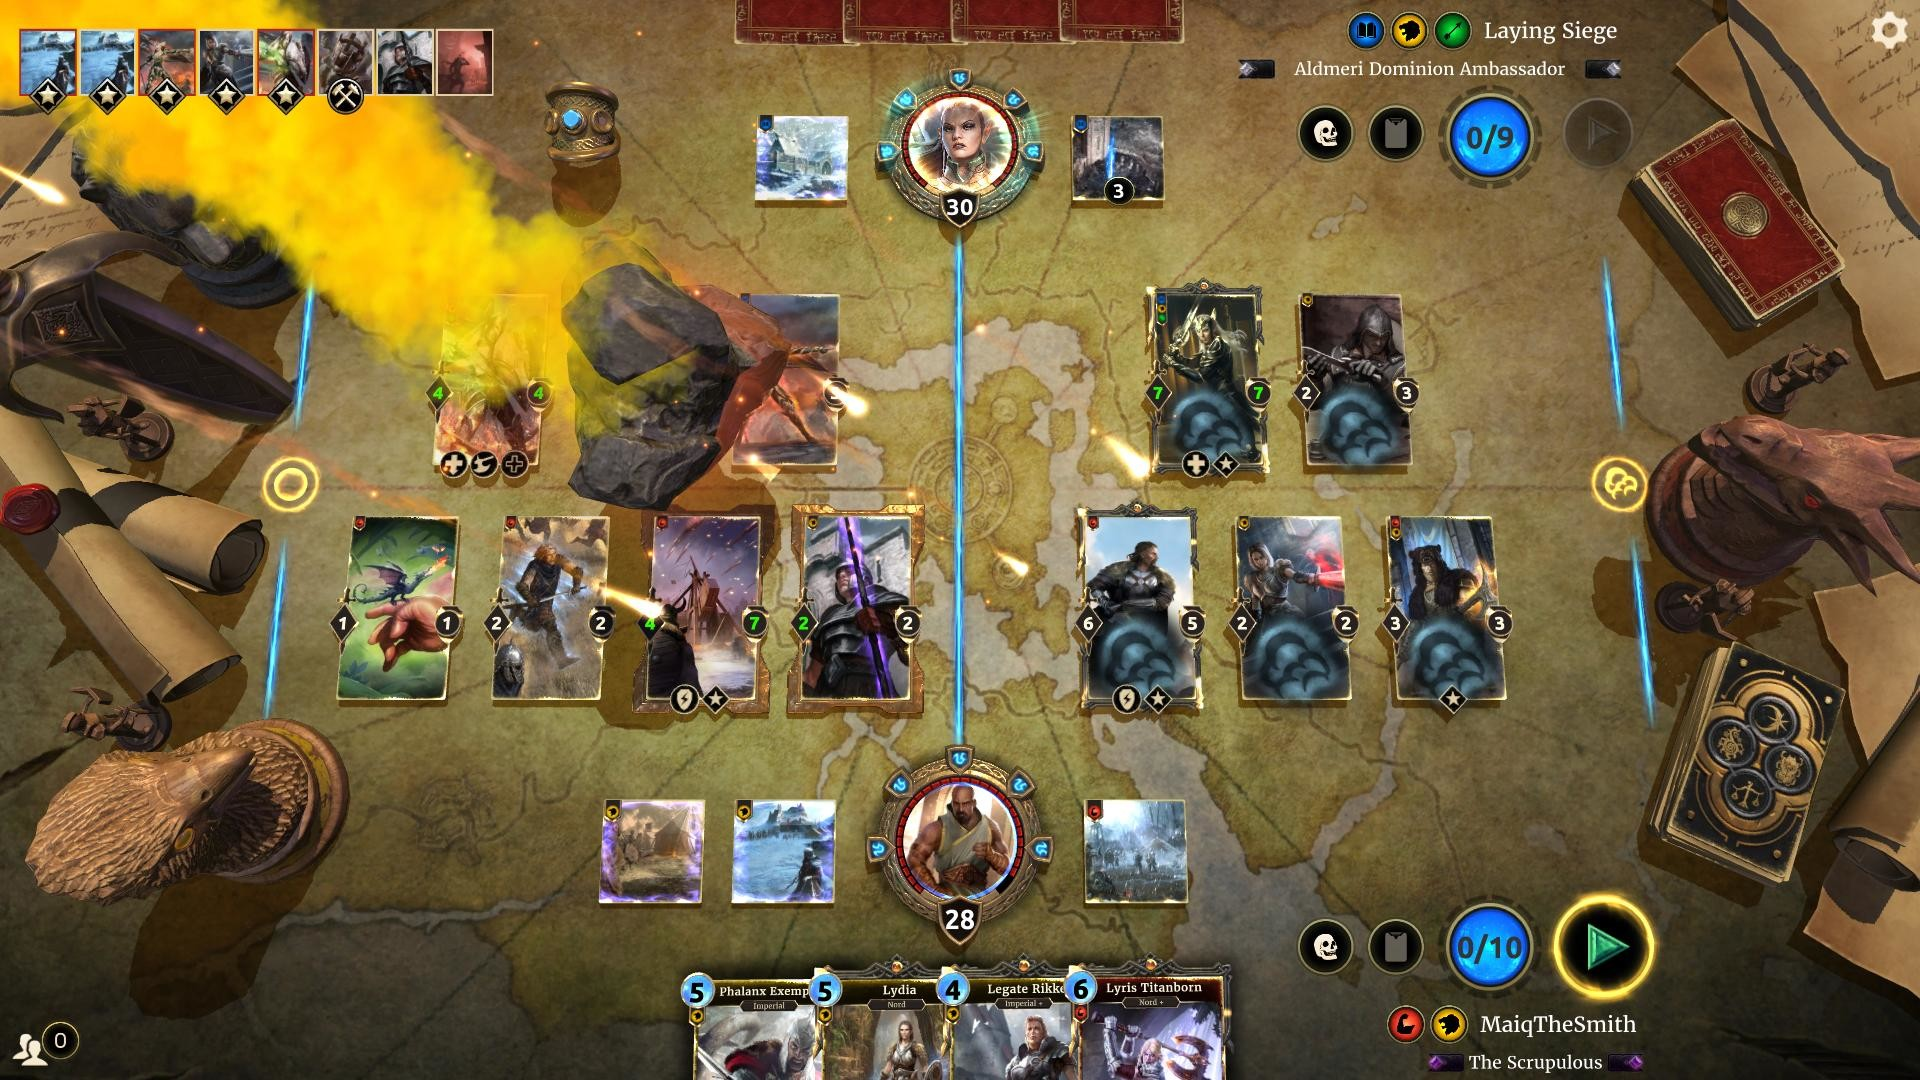 The Elder Scrolls: Legends Gameplay Screenshot 4